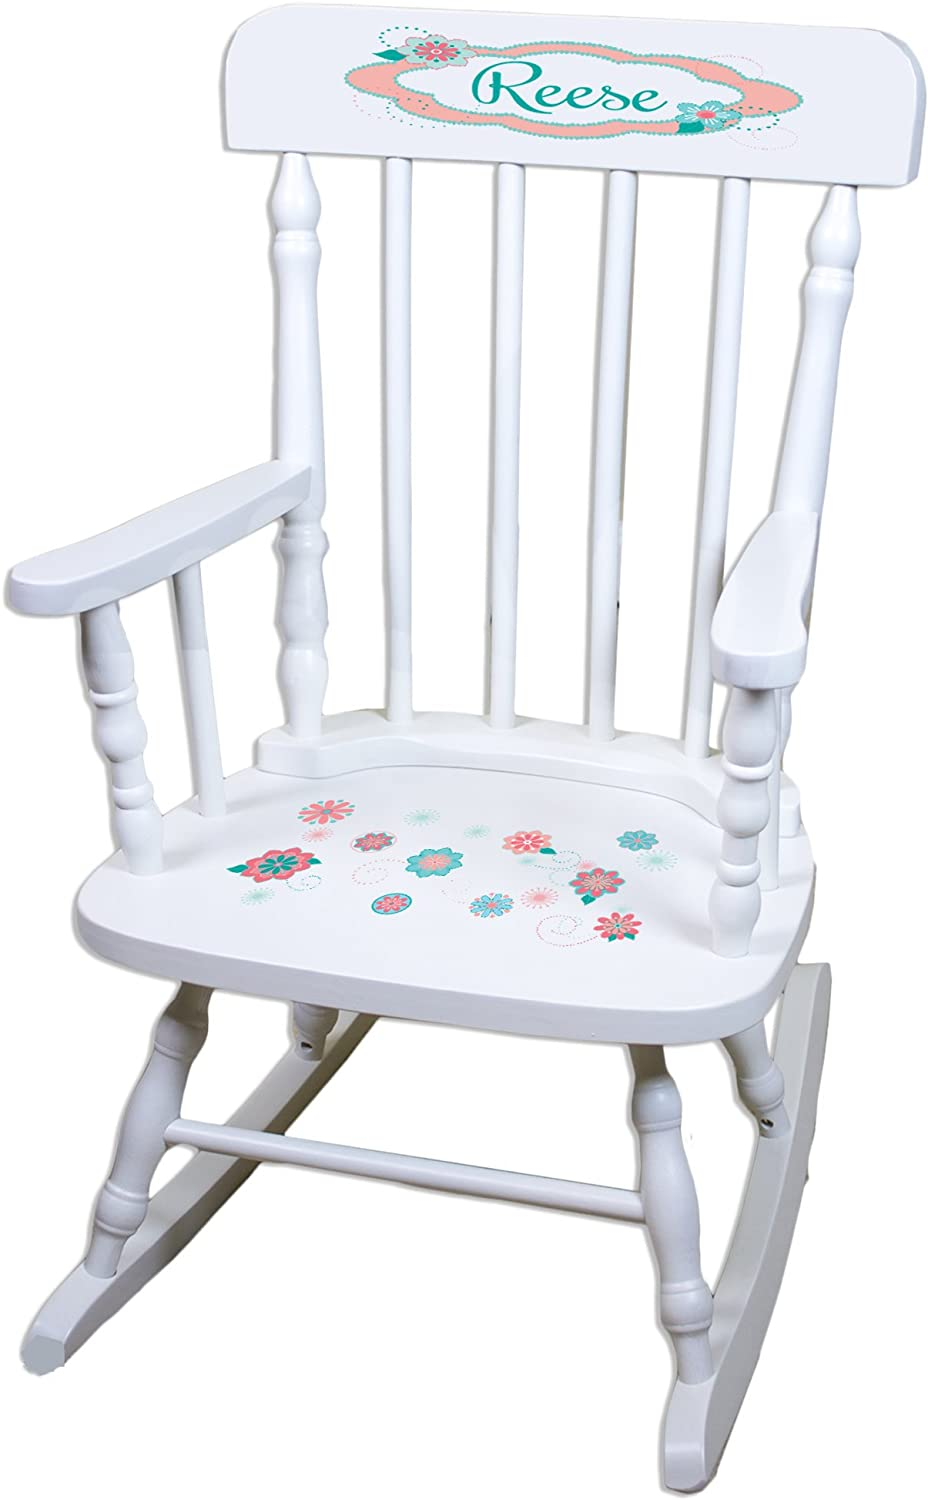 Personalized free shipping Coralscope White Finally popular brand Chair Rocking Childrens